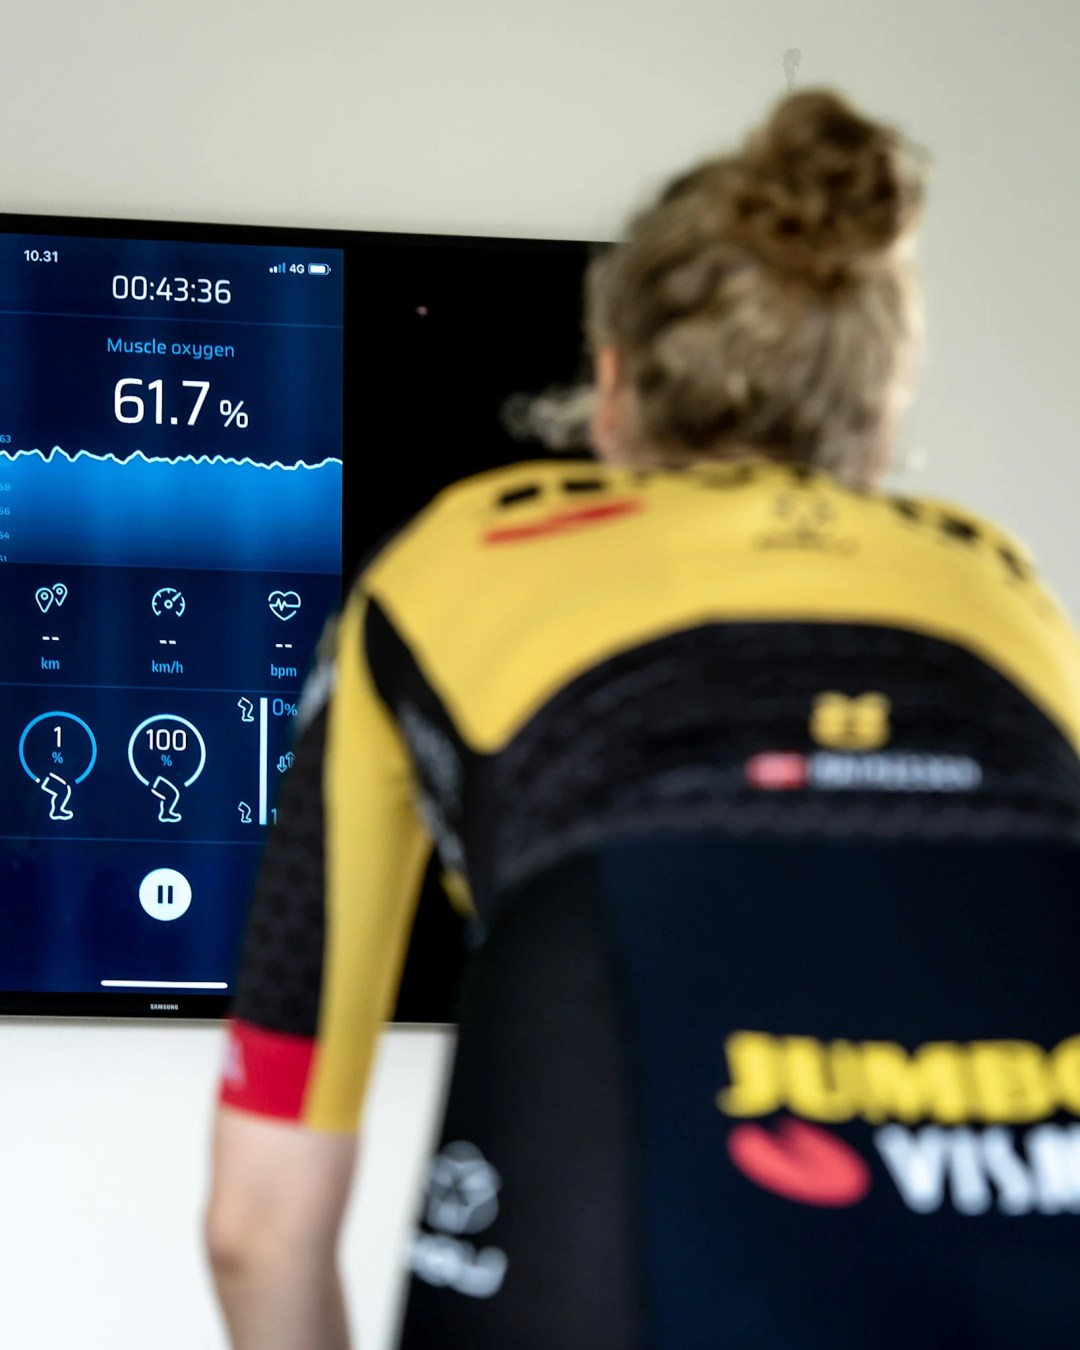 Warming up: Cycling intervals